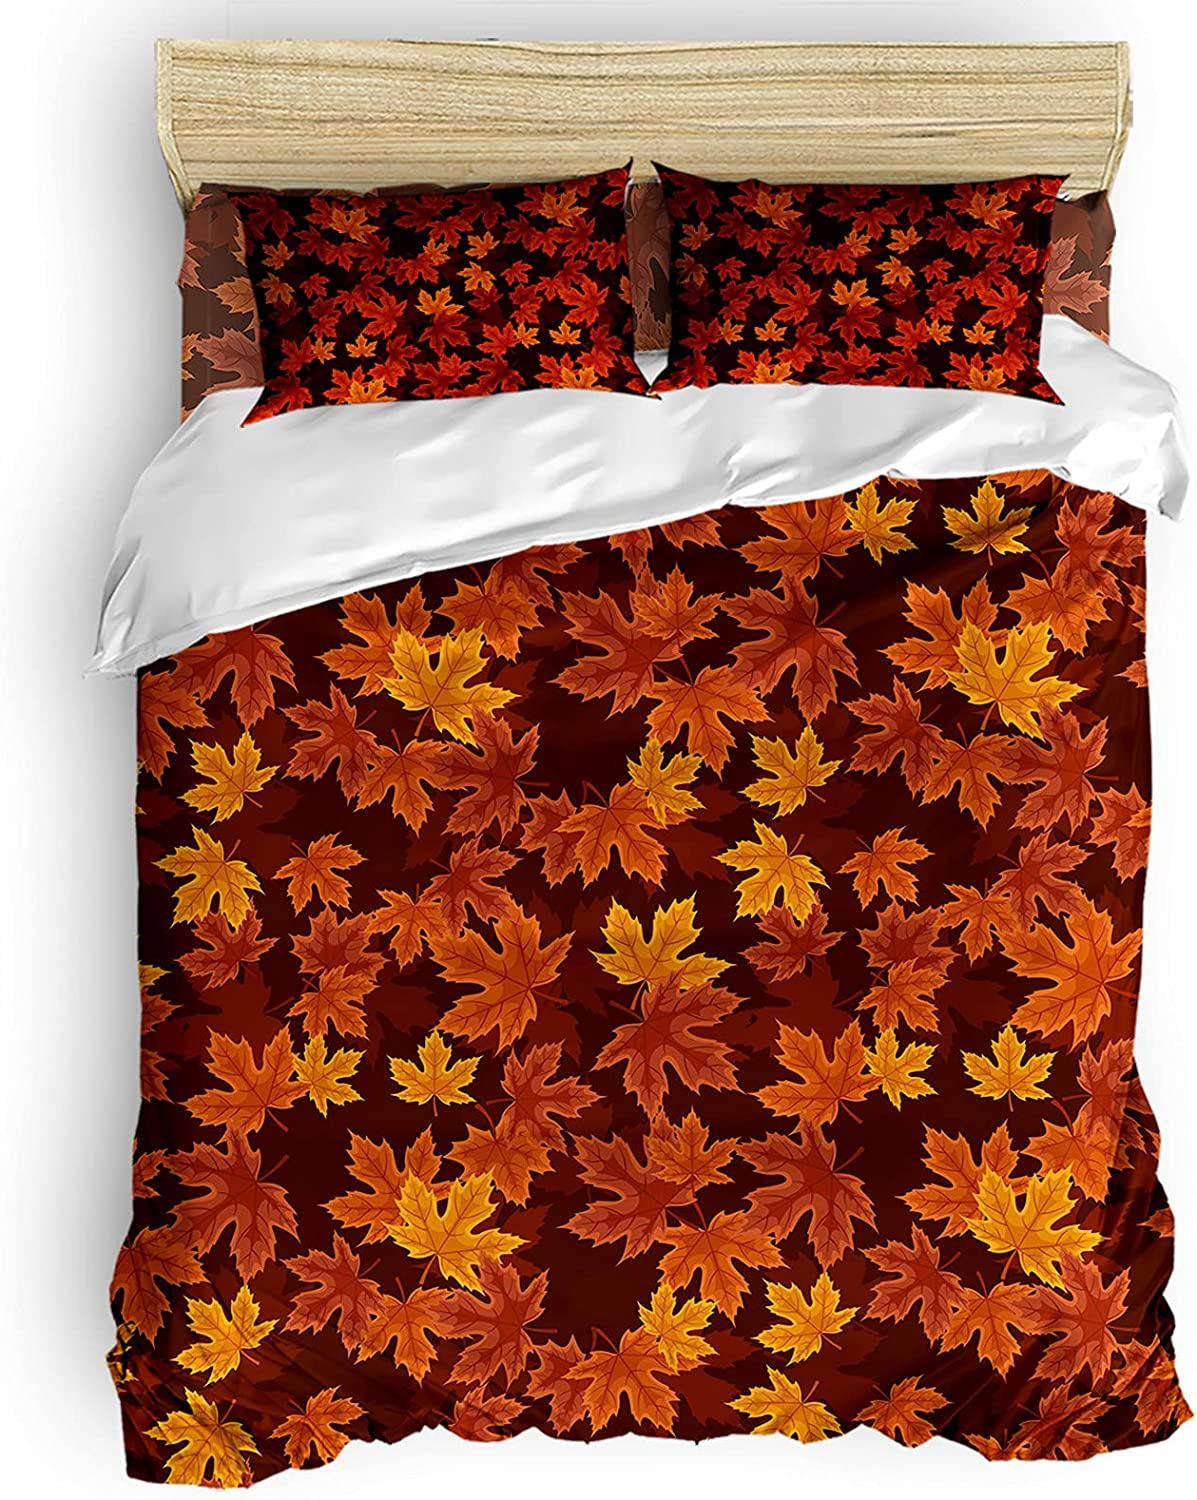 ! Super beauty product restock quality top! Duvet Cover Set Califonia King Thanksgiving Vintage Size Maple Award-winning store